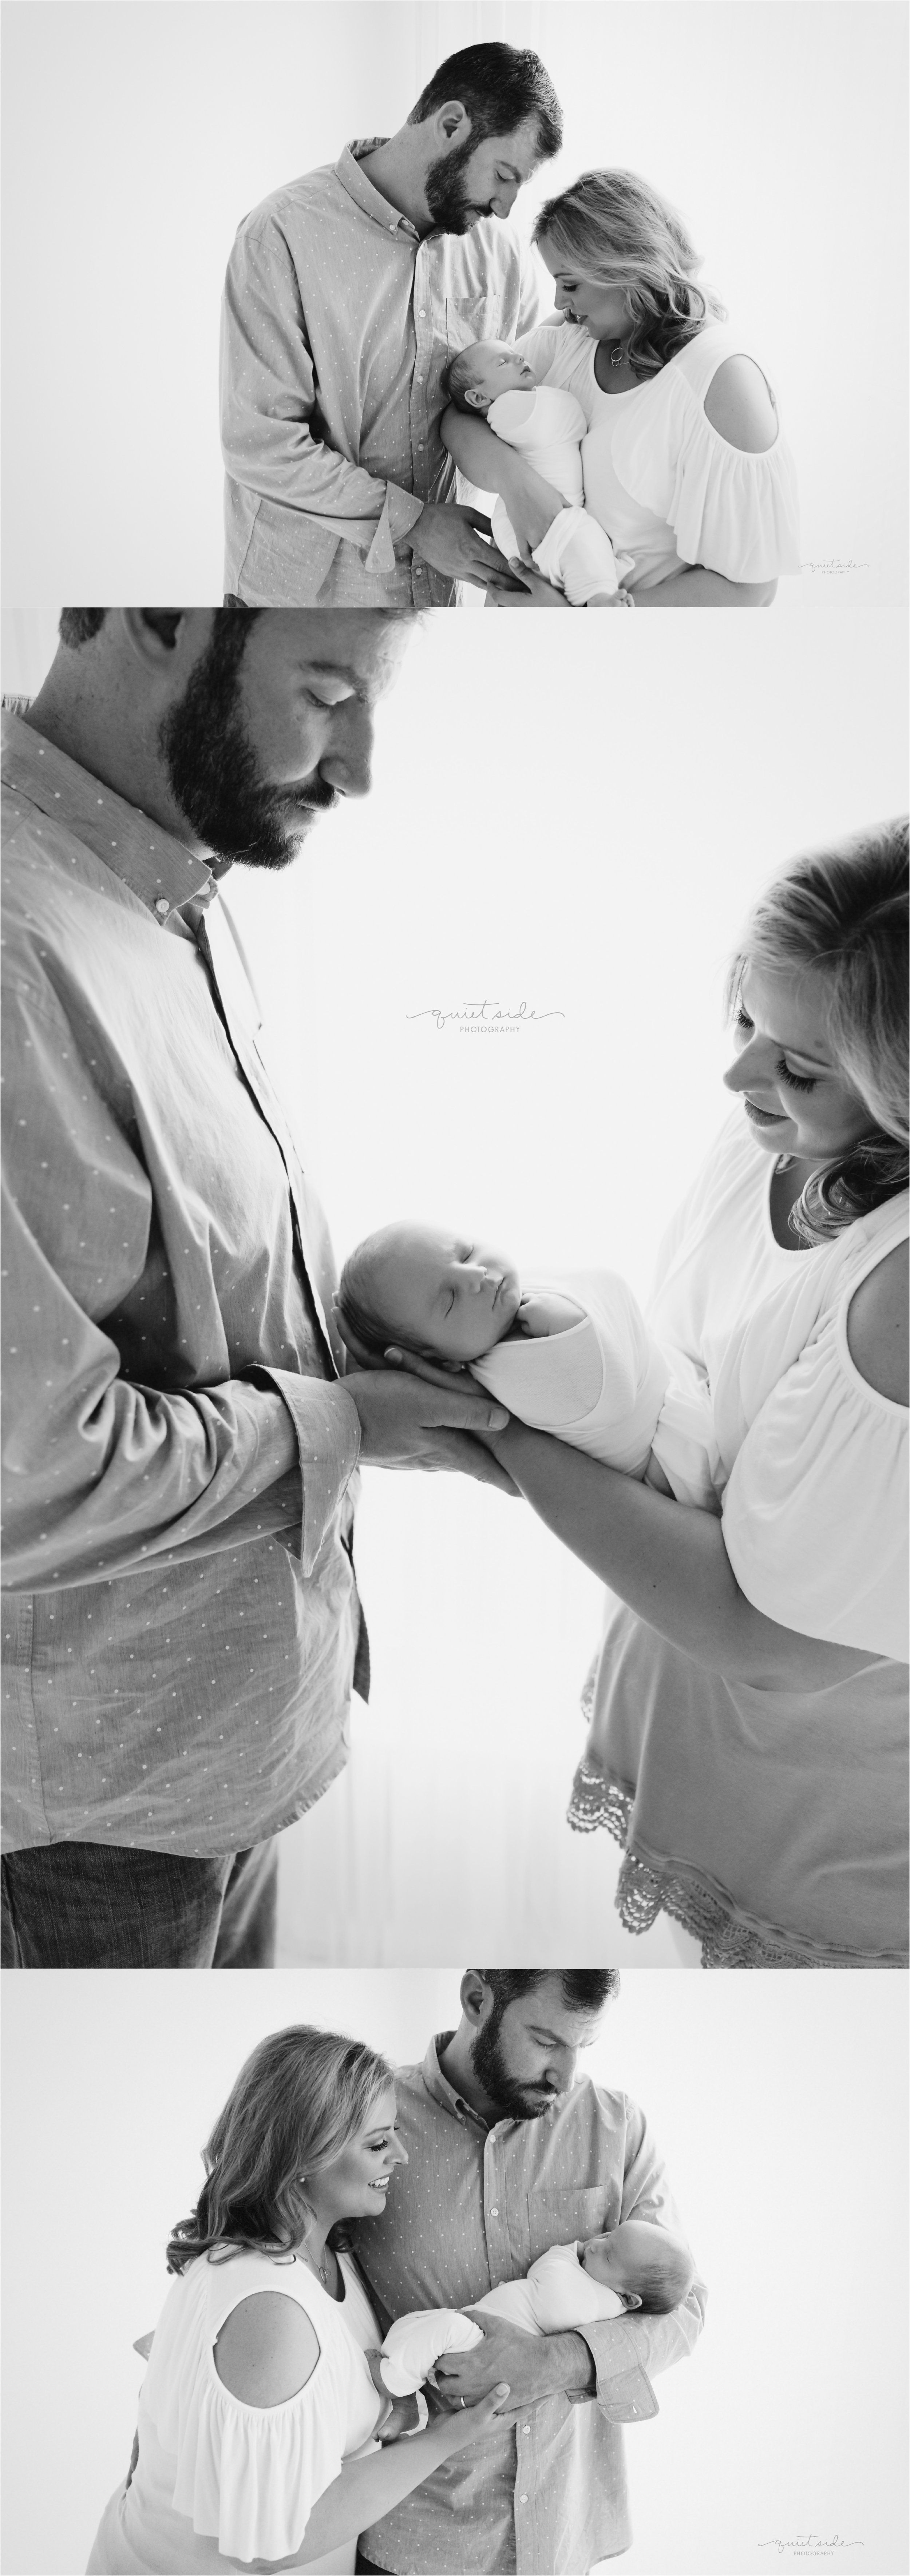 Loudoun-County-Newborn-Photographer-NorthernVA-Photographer-Newborn-Maternity-Family-Motherhood-Daniel-Newborn-Session-August2017-QuietSidePhotography.jpg